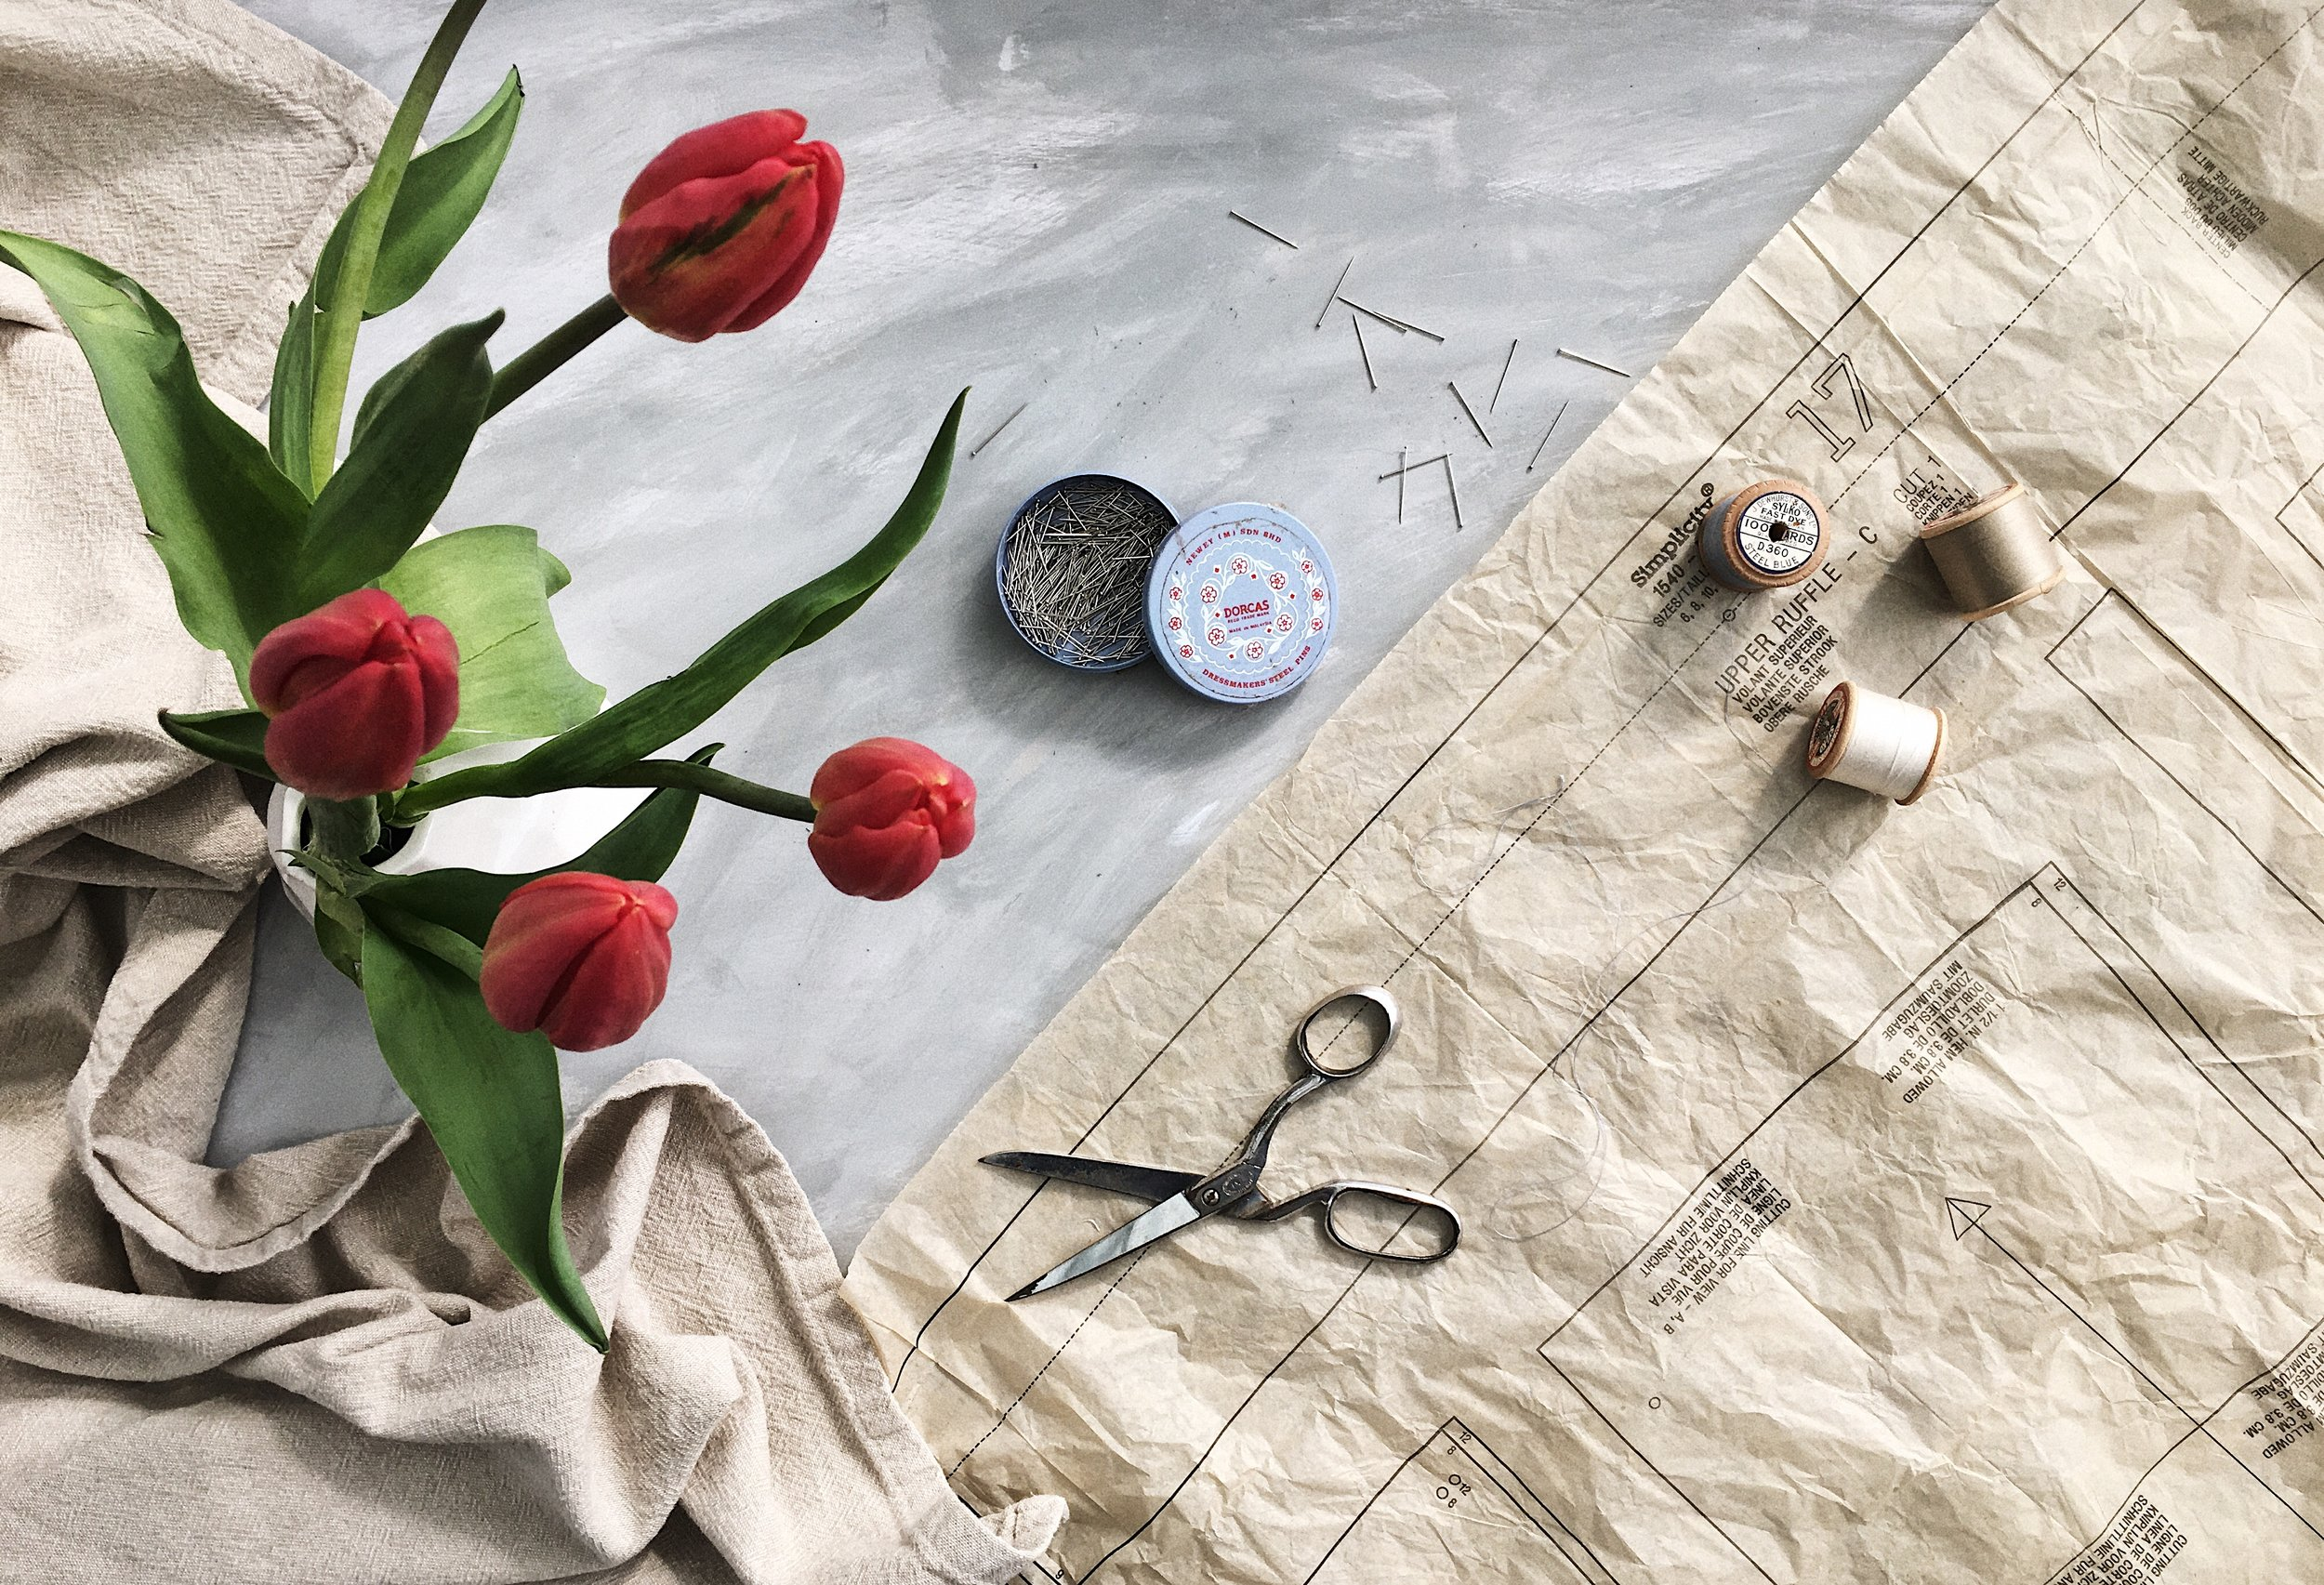 Get your free copy of my 4 WAYS TO STYLE A FLAT LAY handbook when you join the mailing list